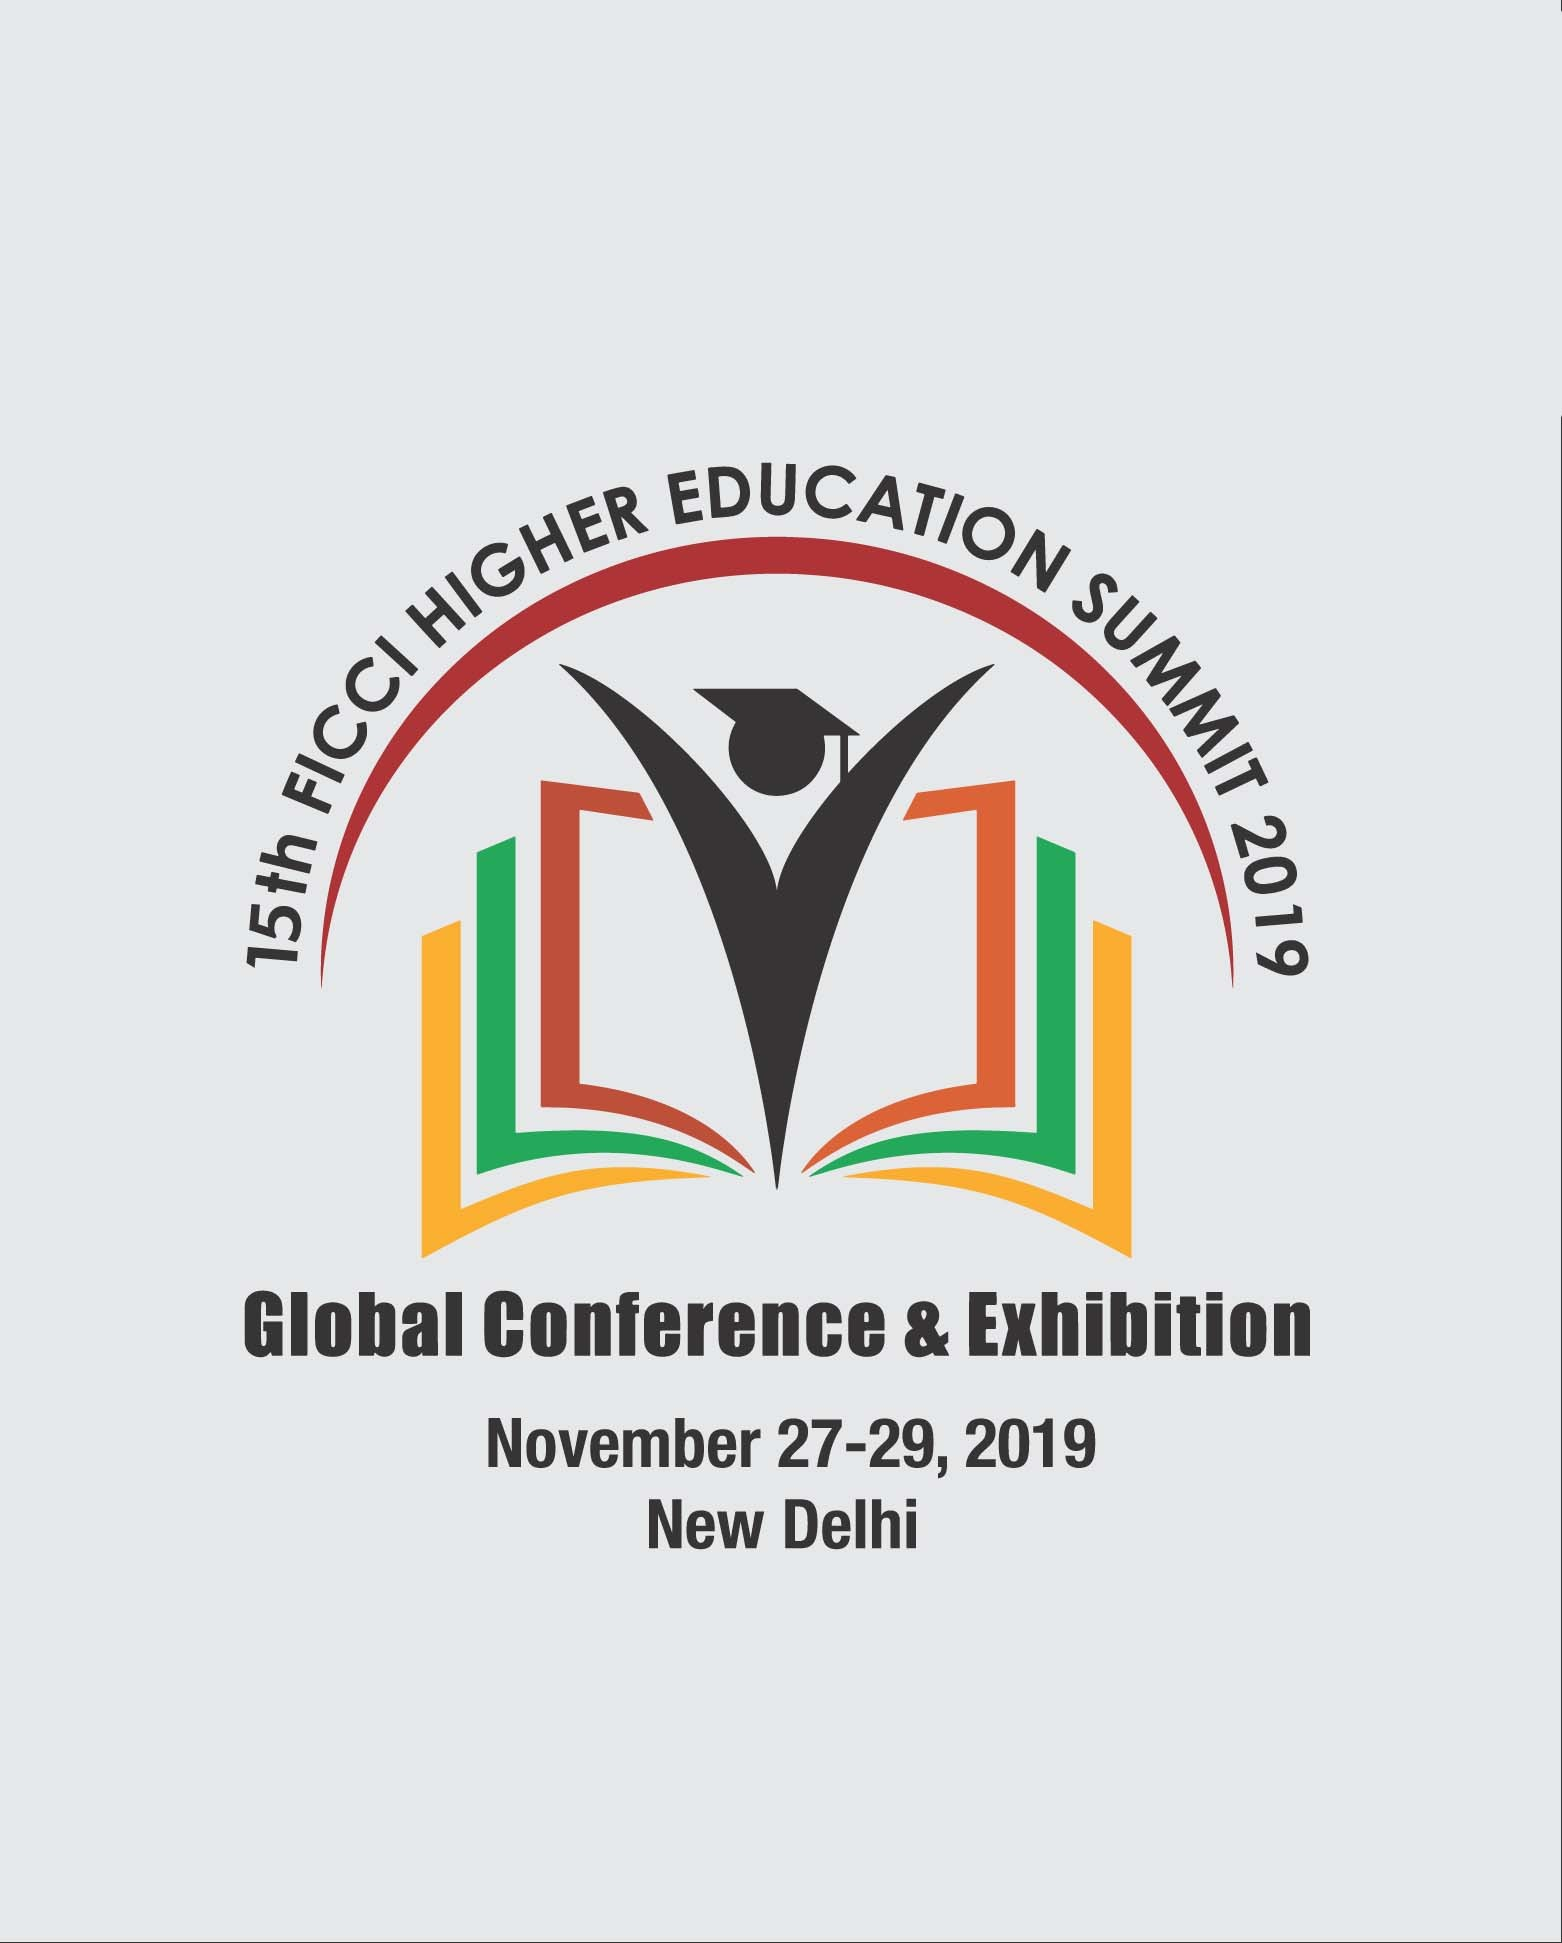 15th FICCI Higher Education Summit 2019 - IndiaBioscience